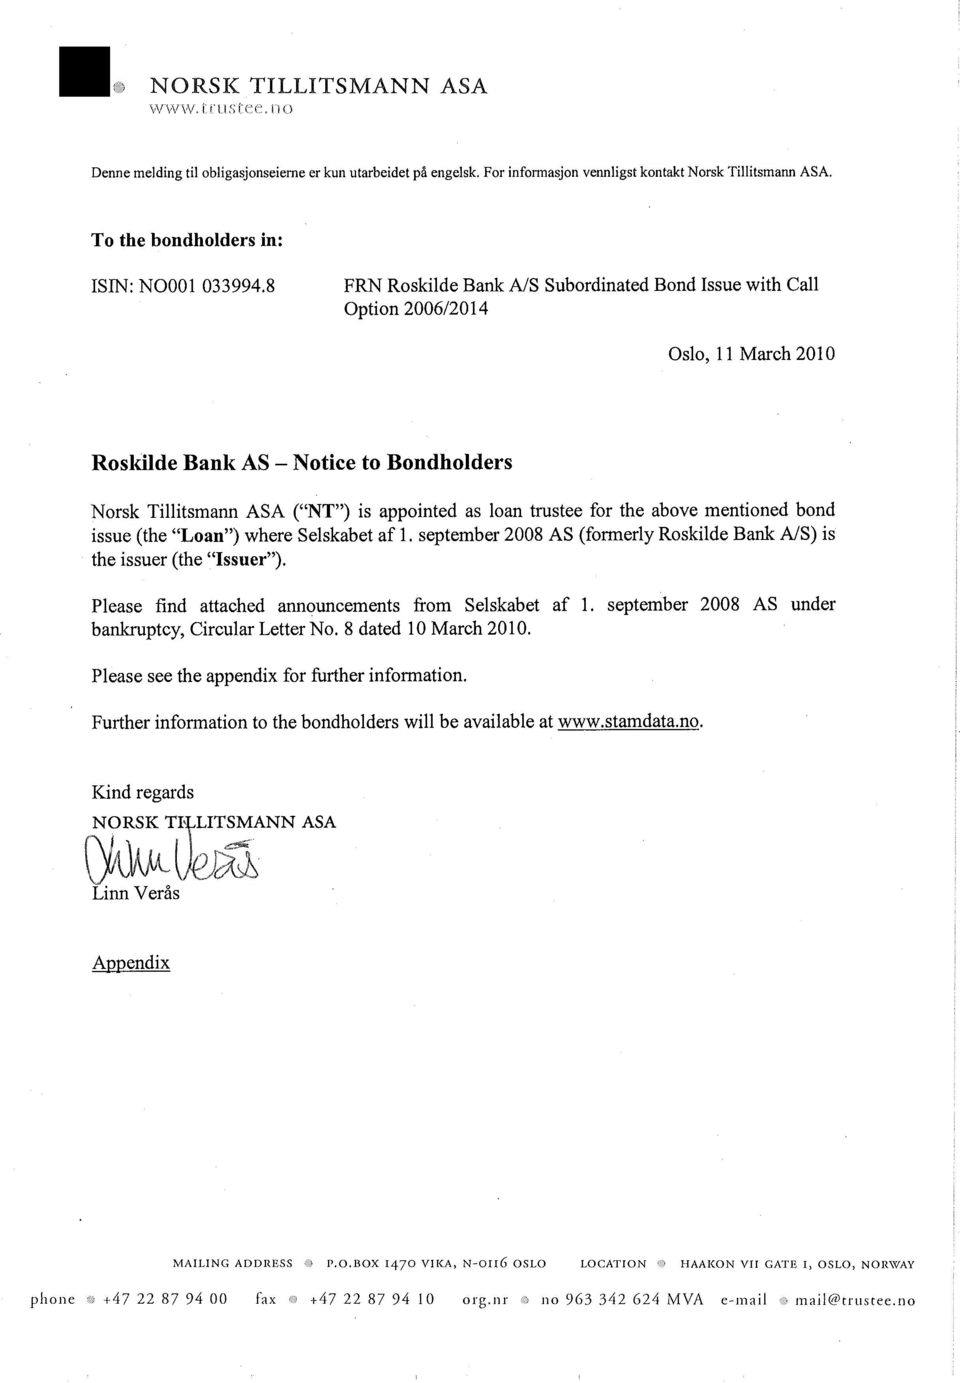 8 FRN Roskilde Bank A/S Subordinated Bond Issue with Call Option 2006/2014 Oslo, 11 March 2010 Roskilde Bank AS - Notice to Bondholders Norsk Tillitsmann ASA ( NT ) is appointed as loan trustee for